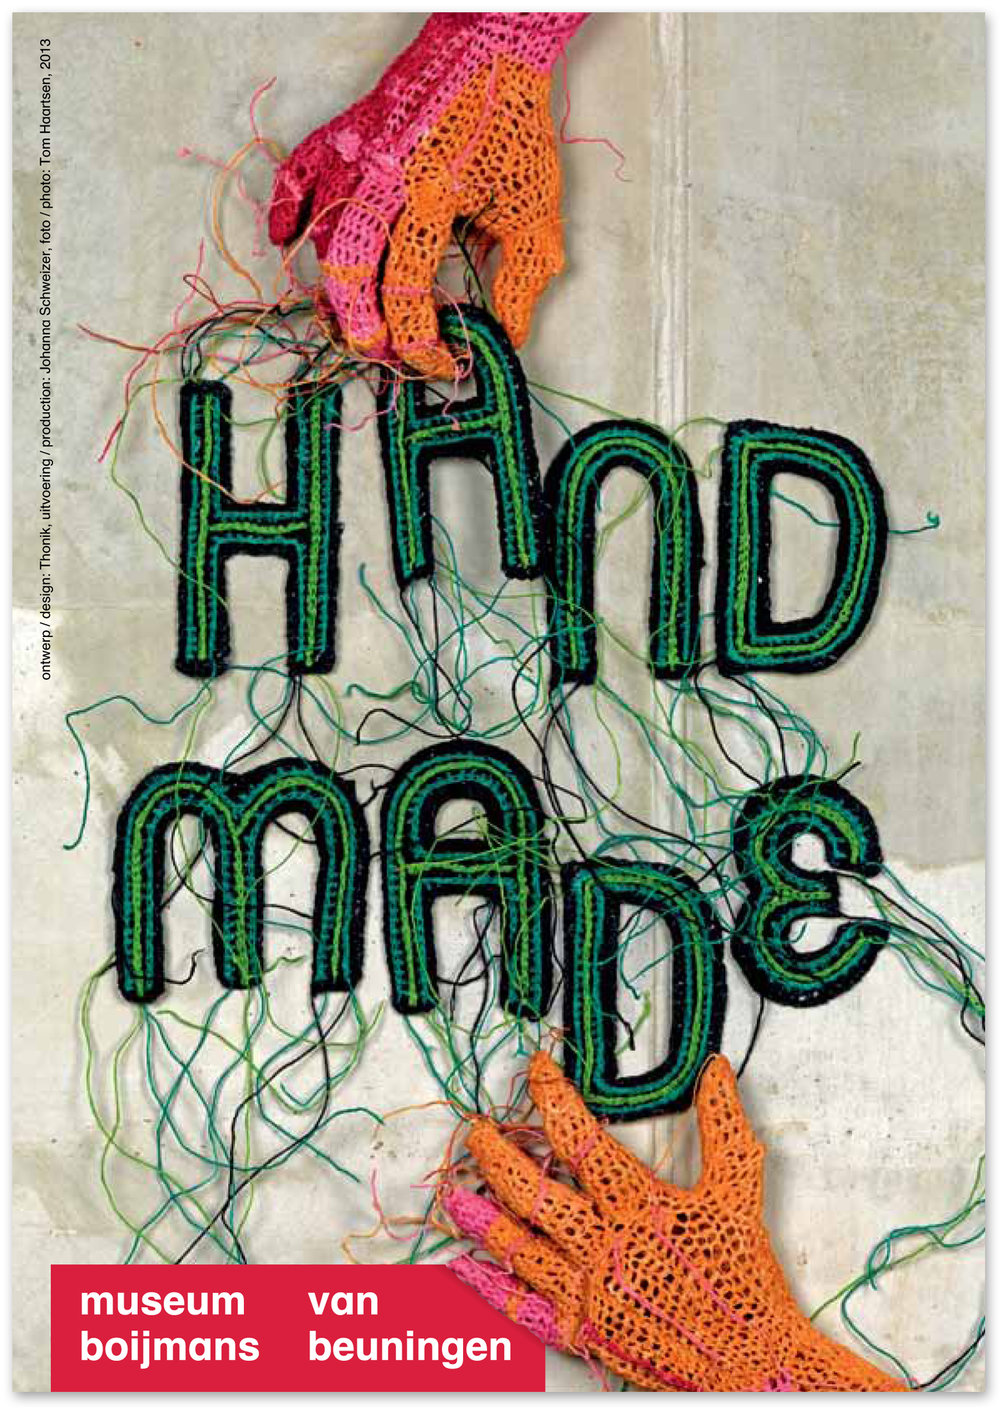 bstudio_colorado-boijmans_van_beuningen-flyer_hand_made-1